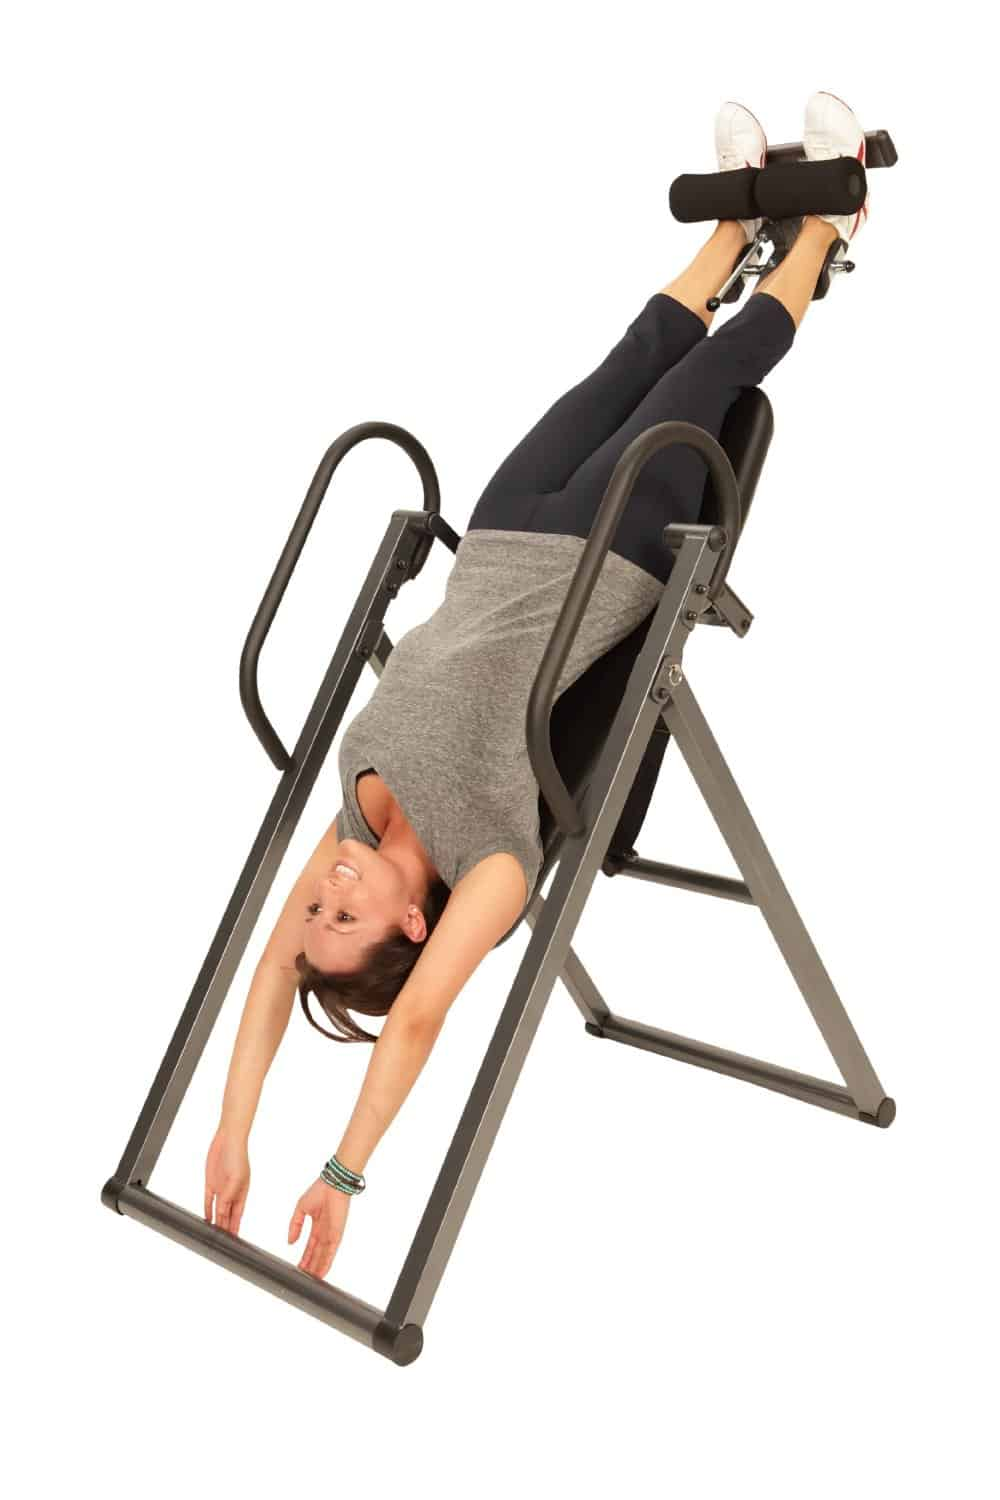 The Ultimate Guide To Inversion Table Therapy